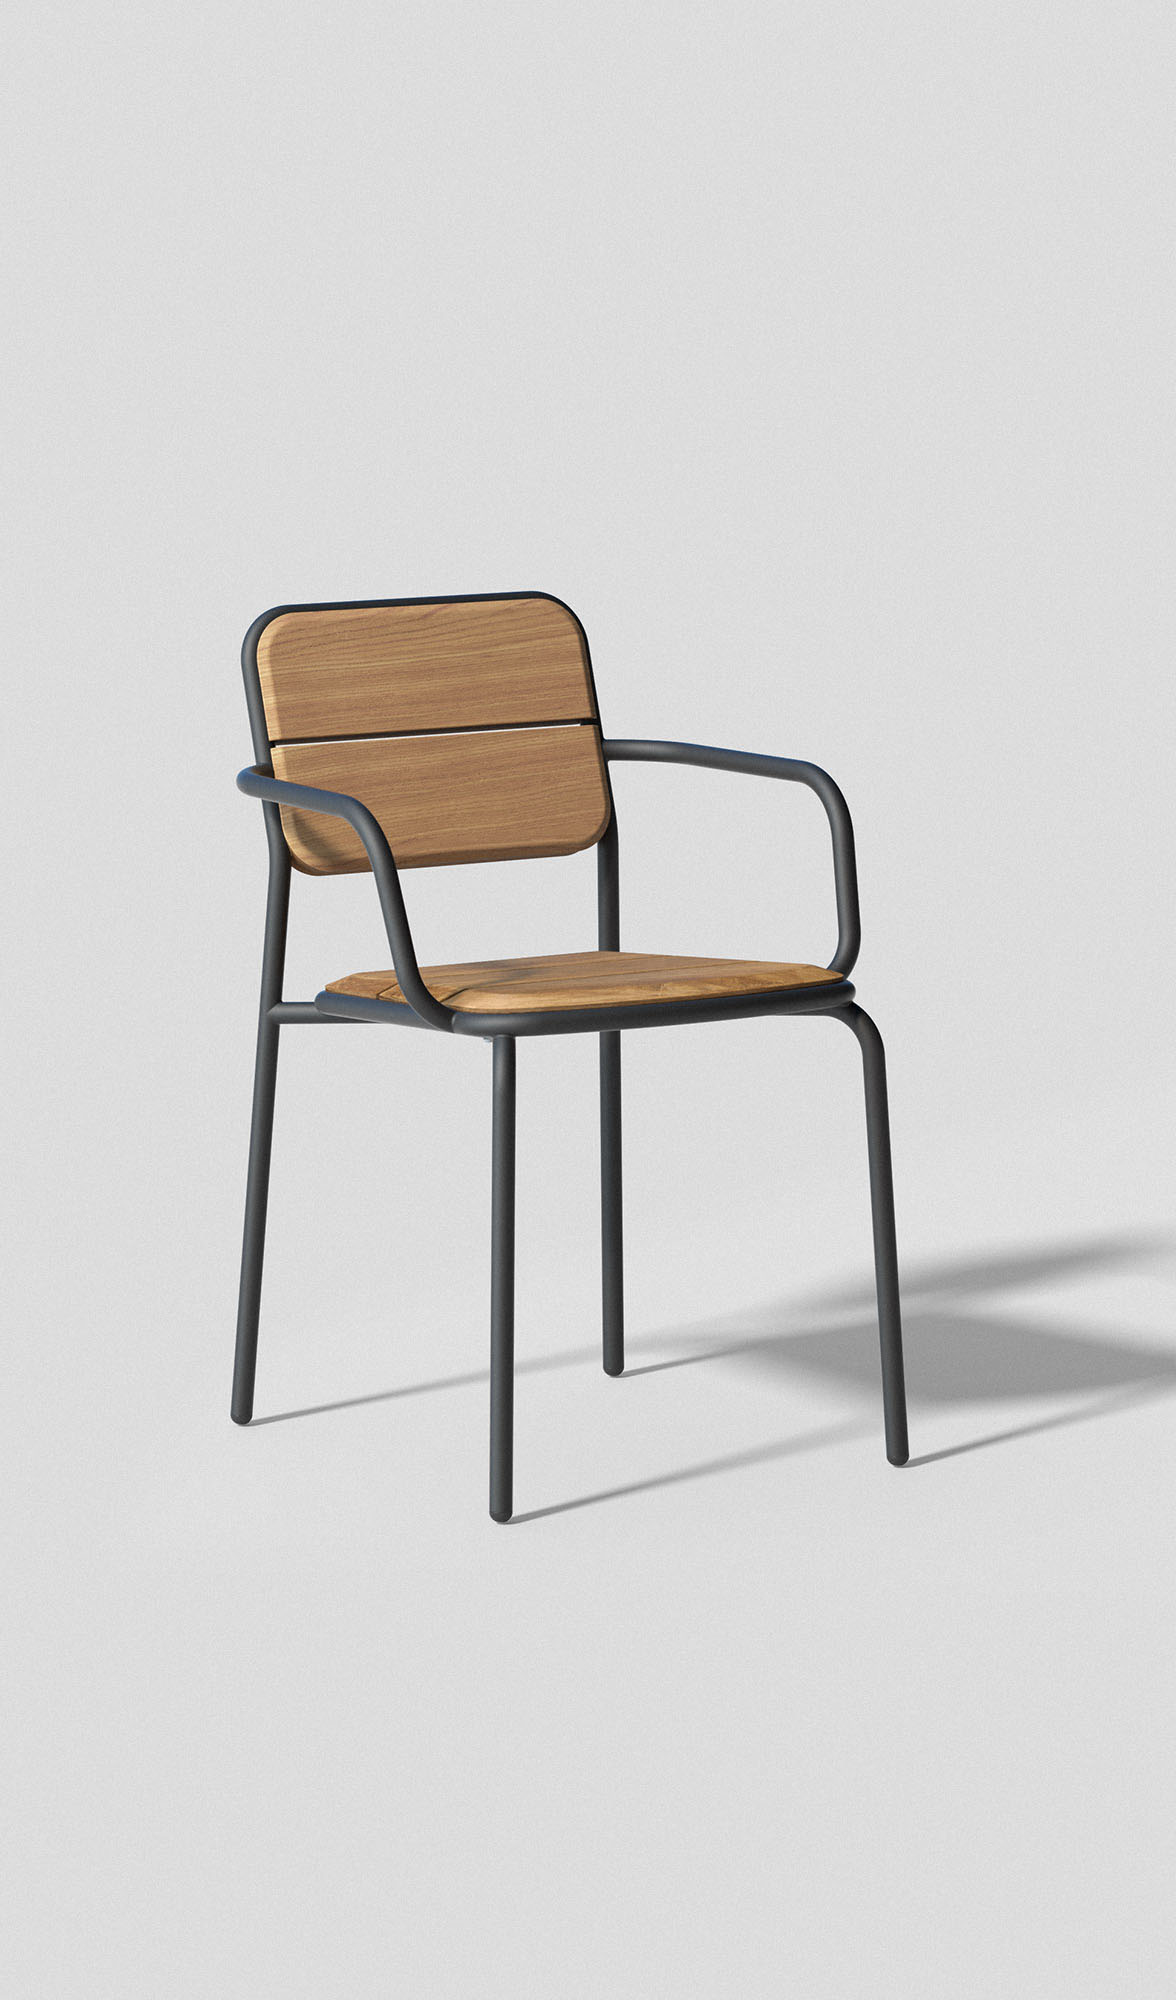 Andreas Bhend Industrial Design Studio TEAK CHAIR – small4-r